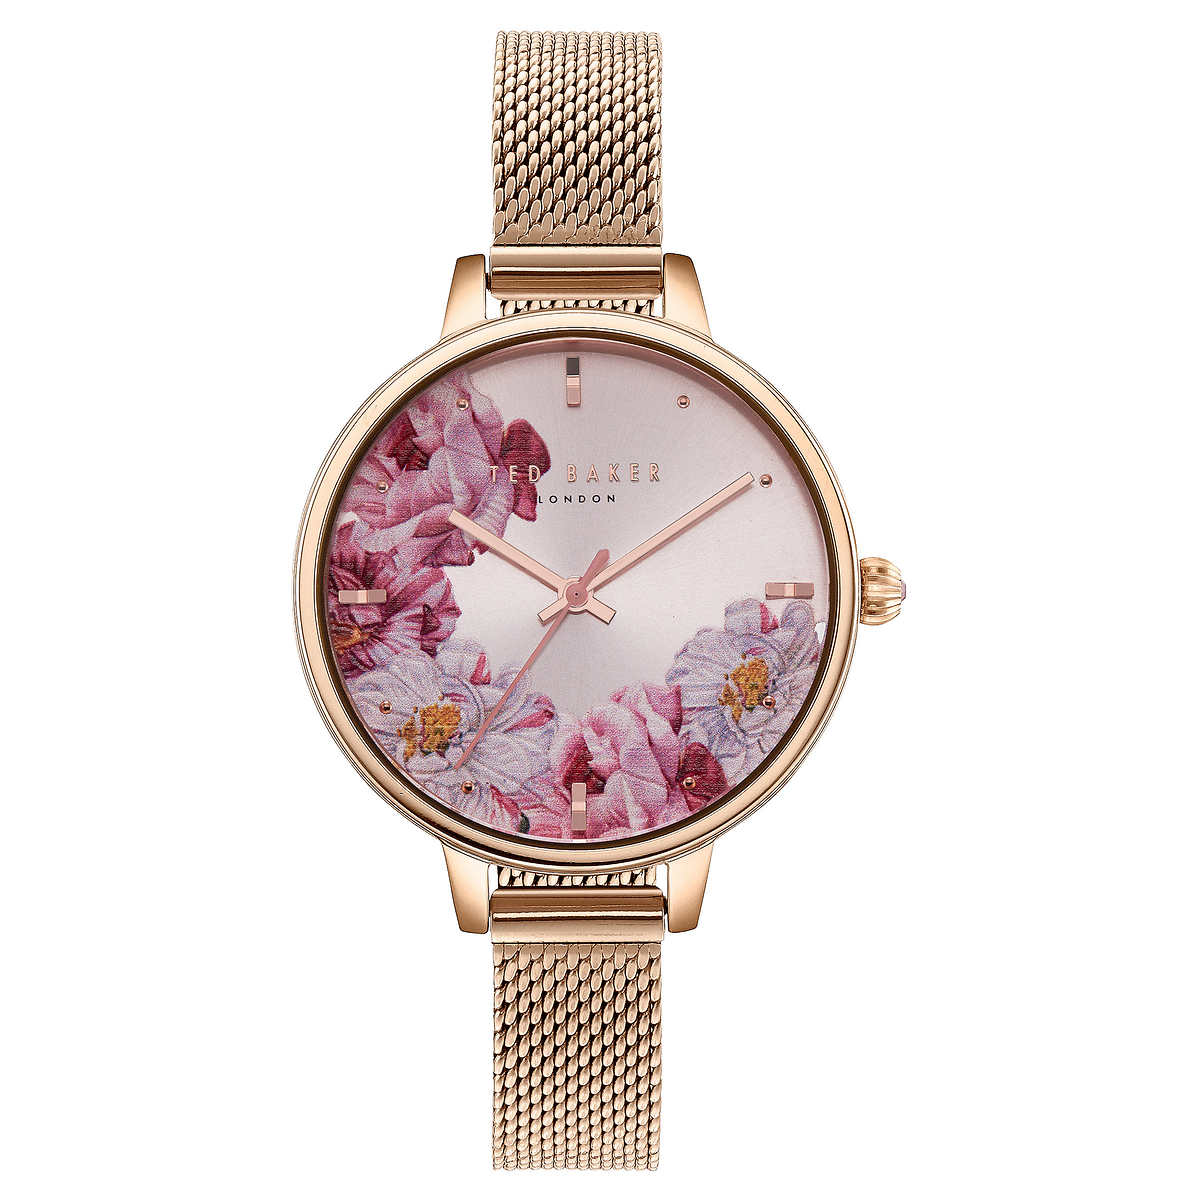 8942a72c3eb Ted Baker Rose Gold-Tone Ladies Watch Set. 1 1